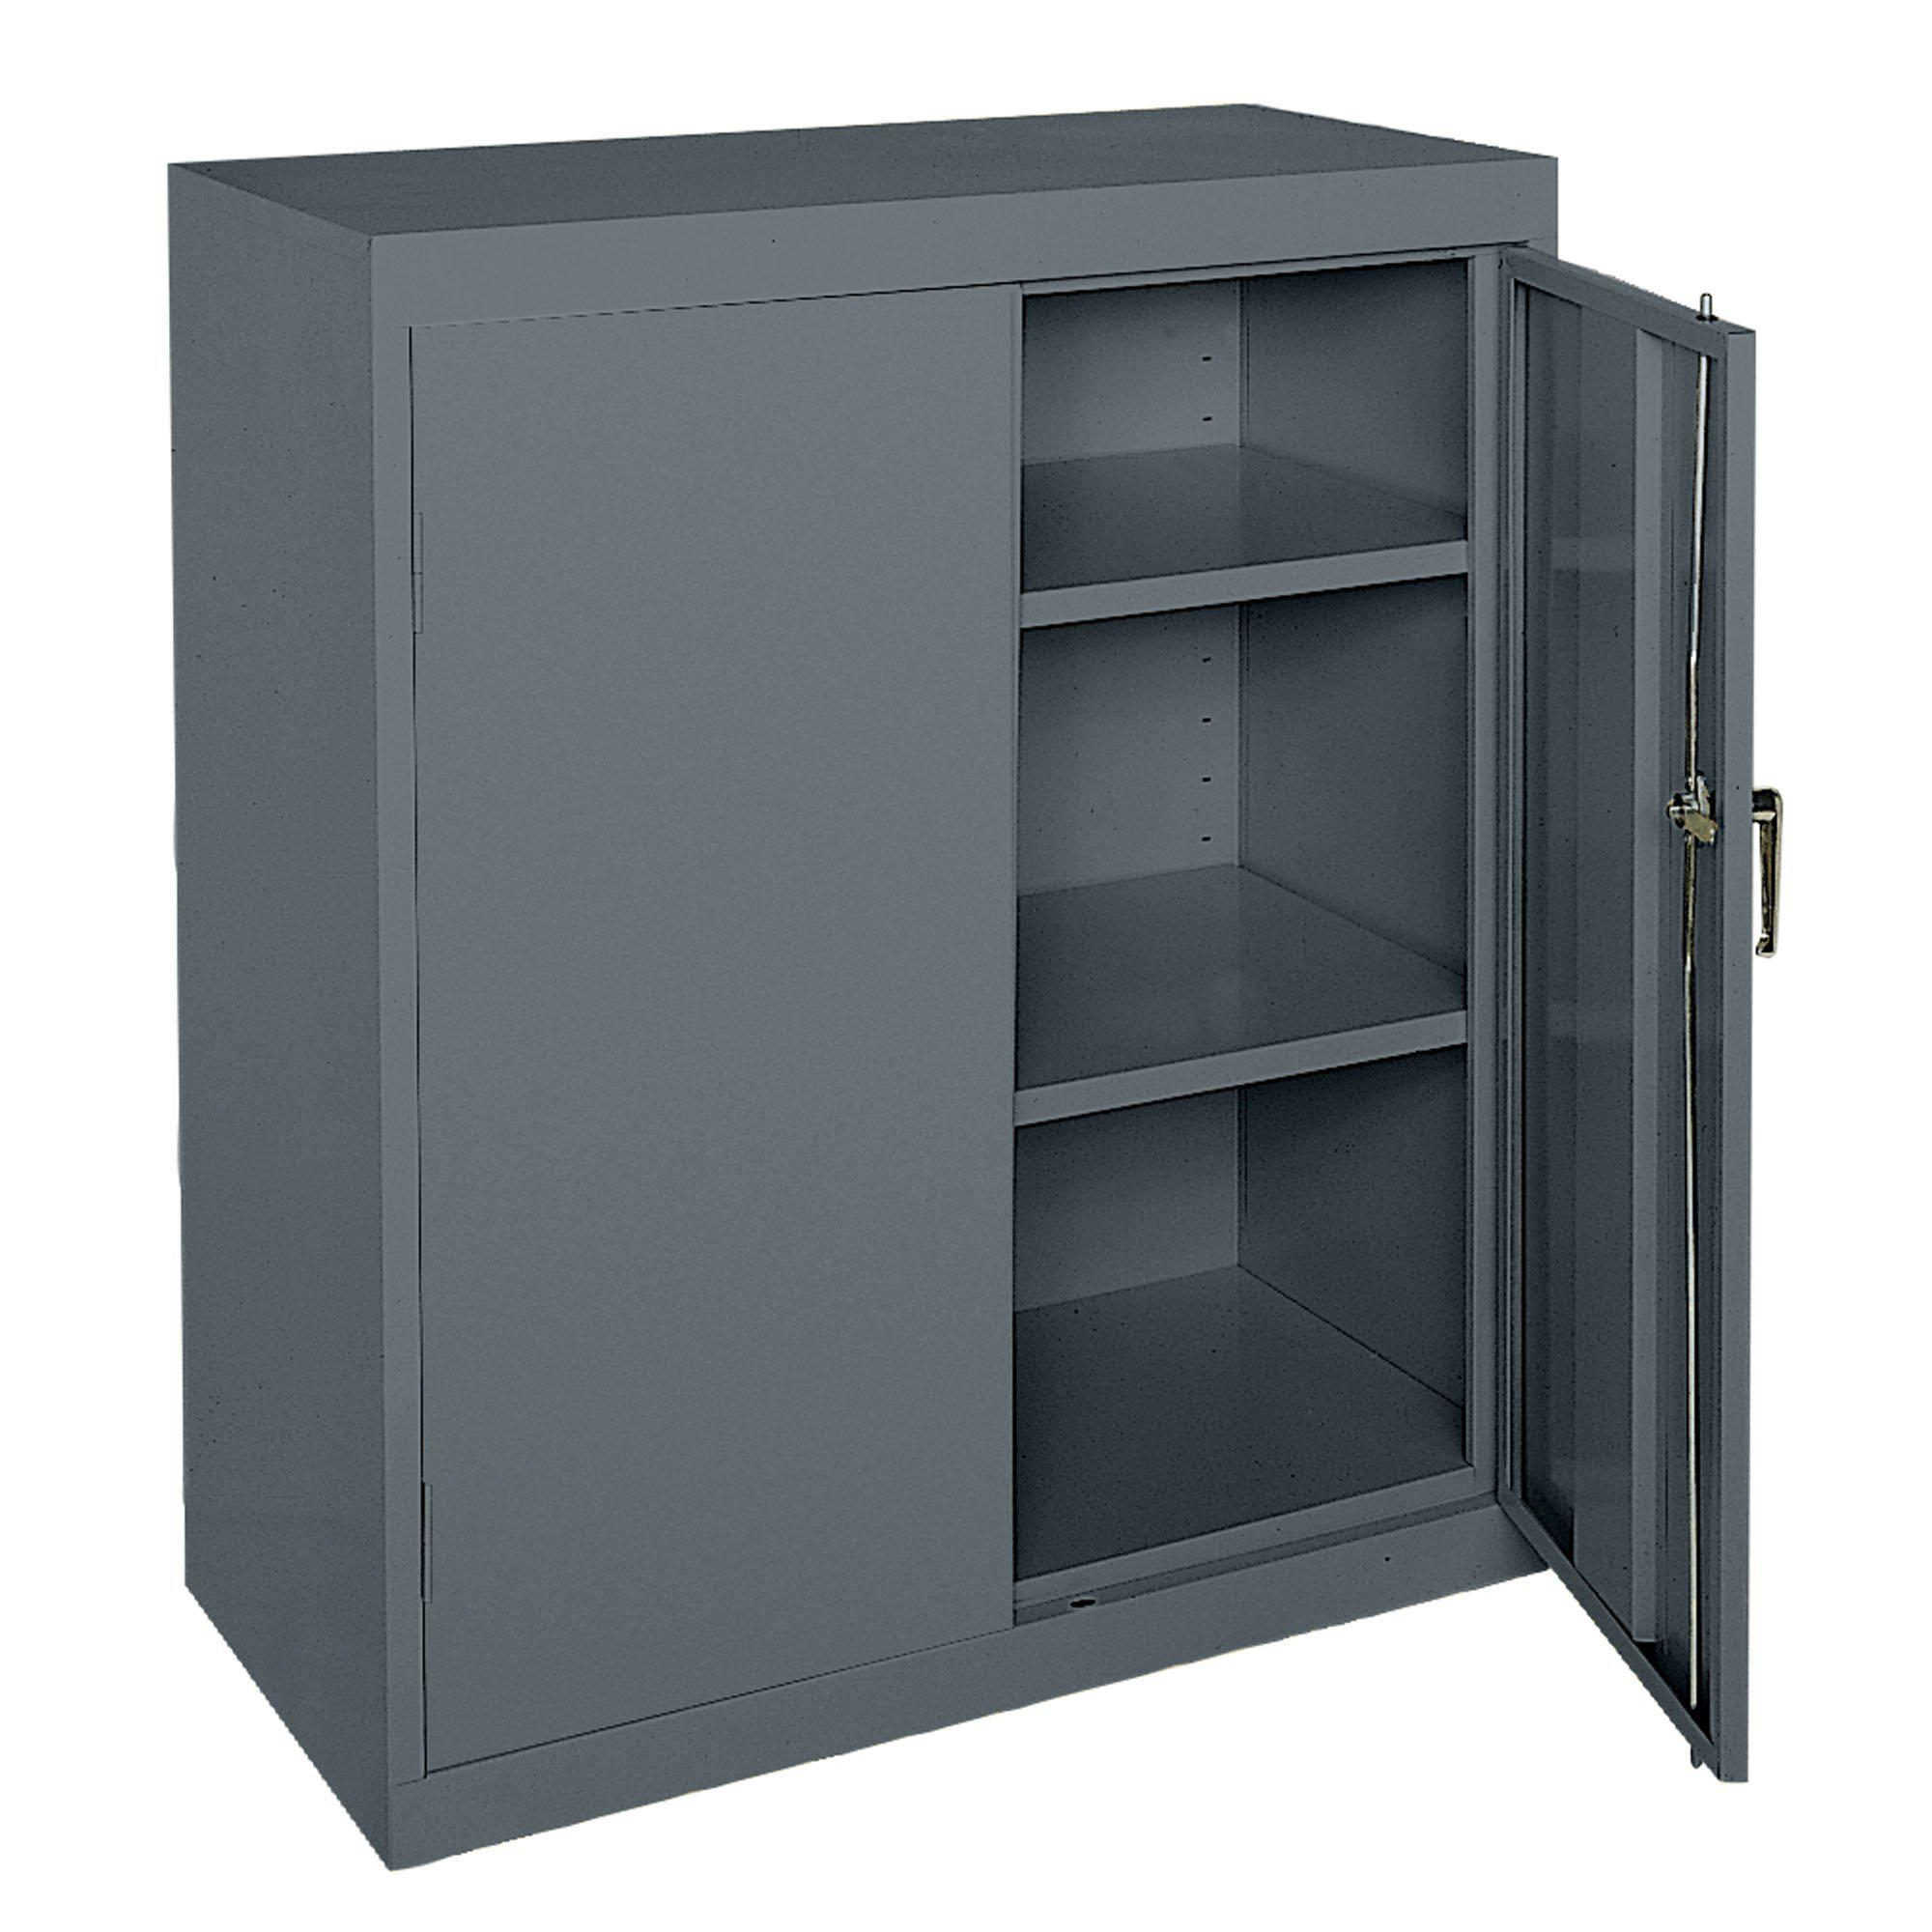 Classic Series Counter Height Storage Cabinet, 36 x 18 x 42